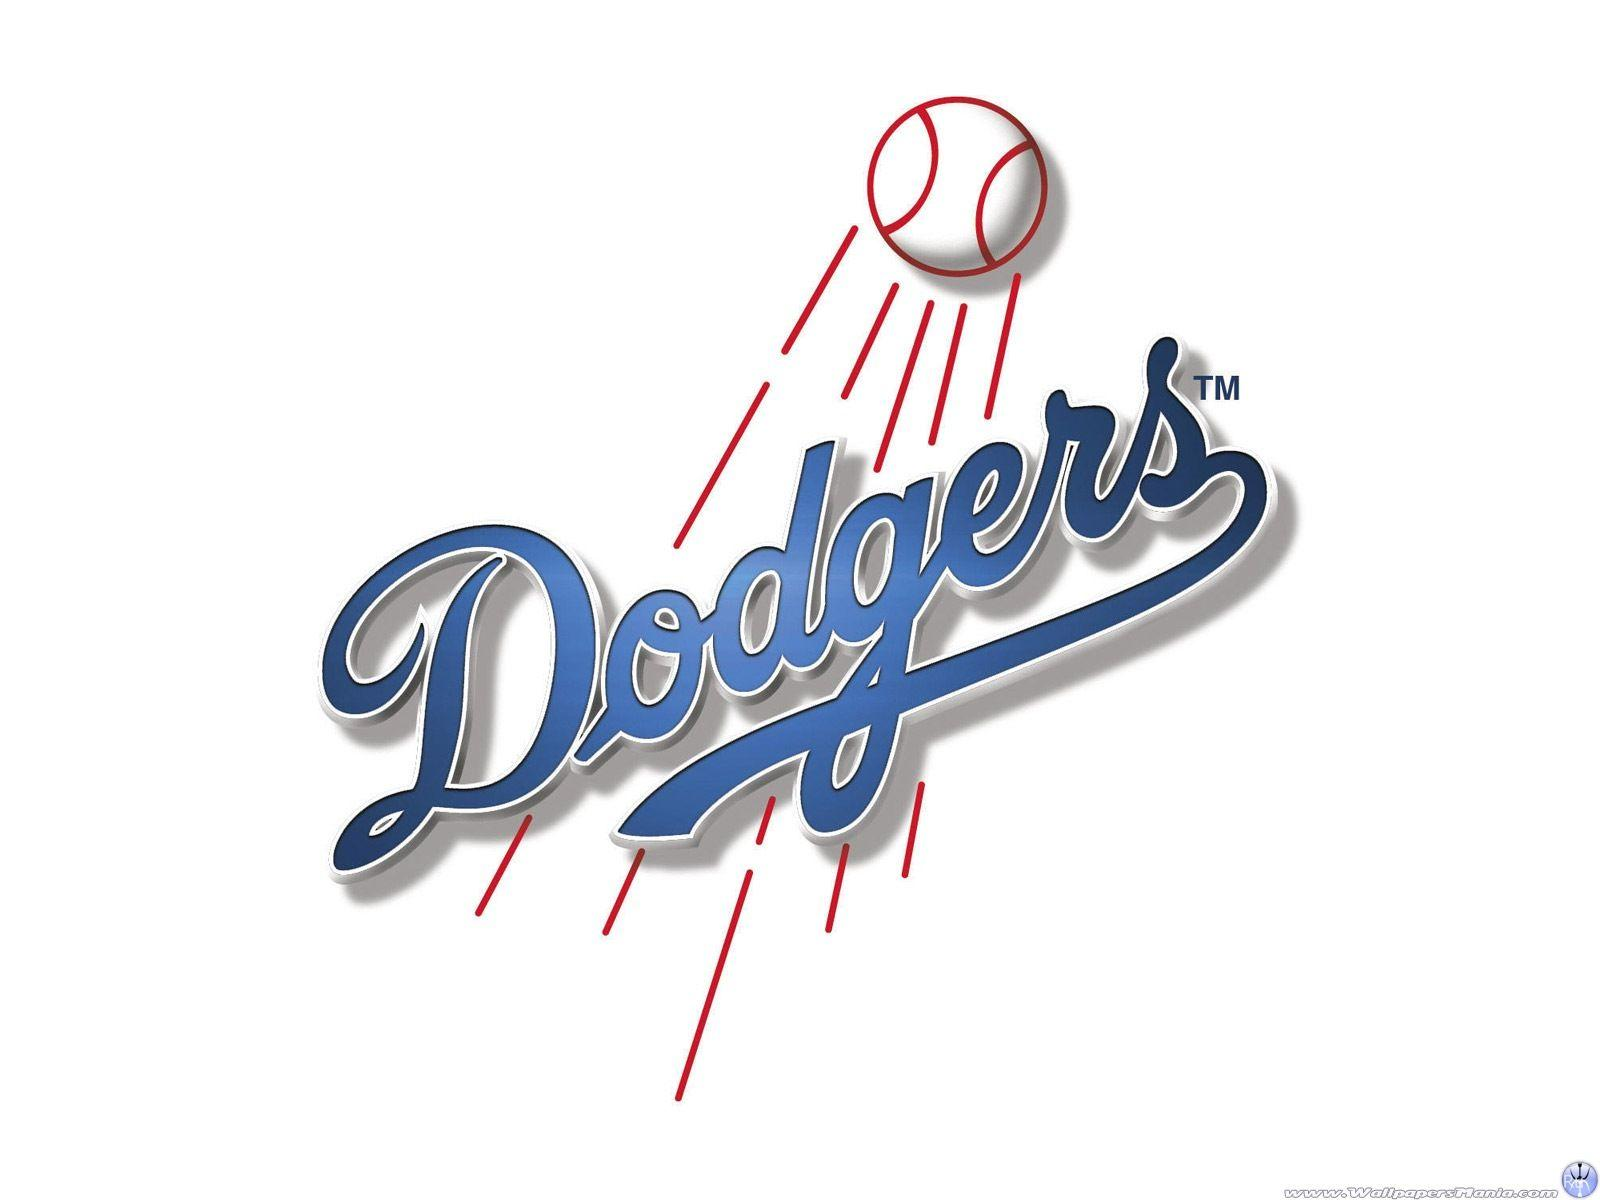 Los Angeles Dodgers Wallpaper - Wallpapers Browse